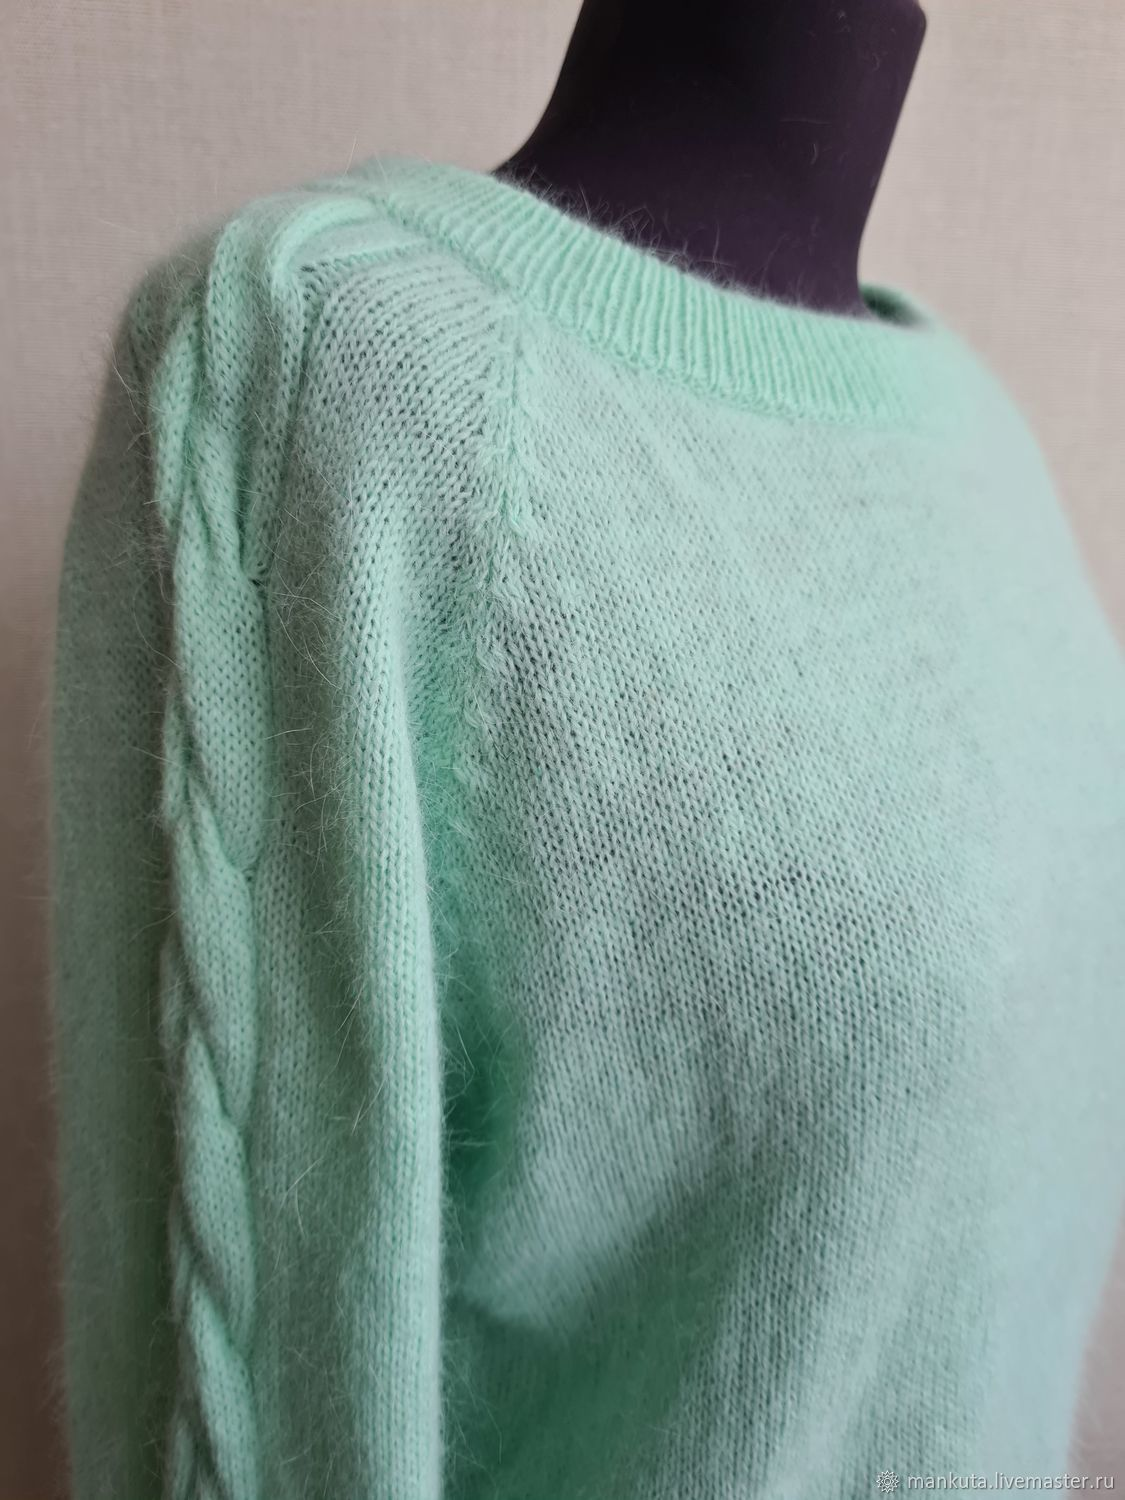 Mint-colored blouse, Sweater Jackets, Moscow,  Фото №1